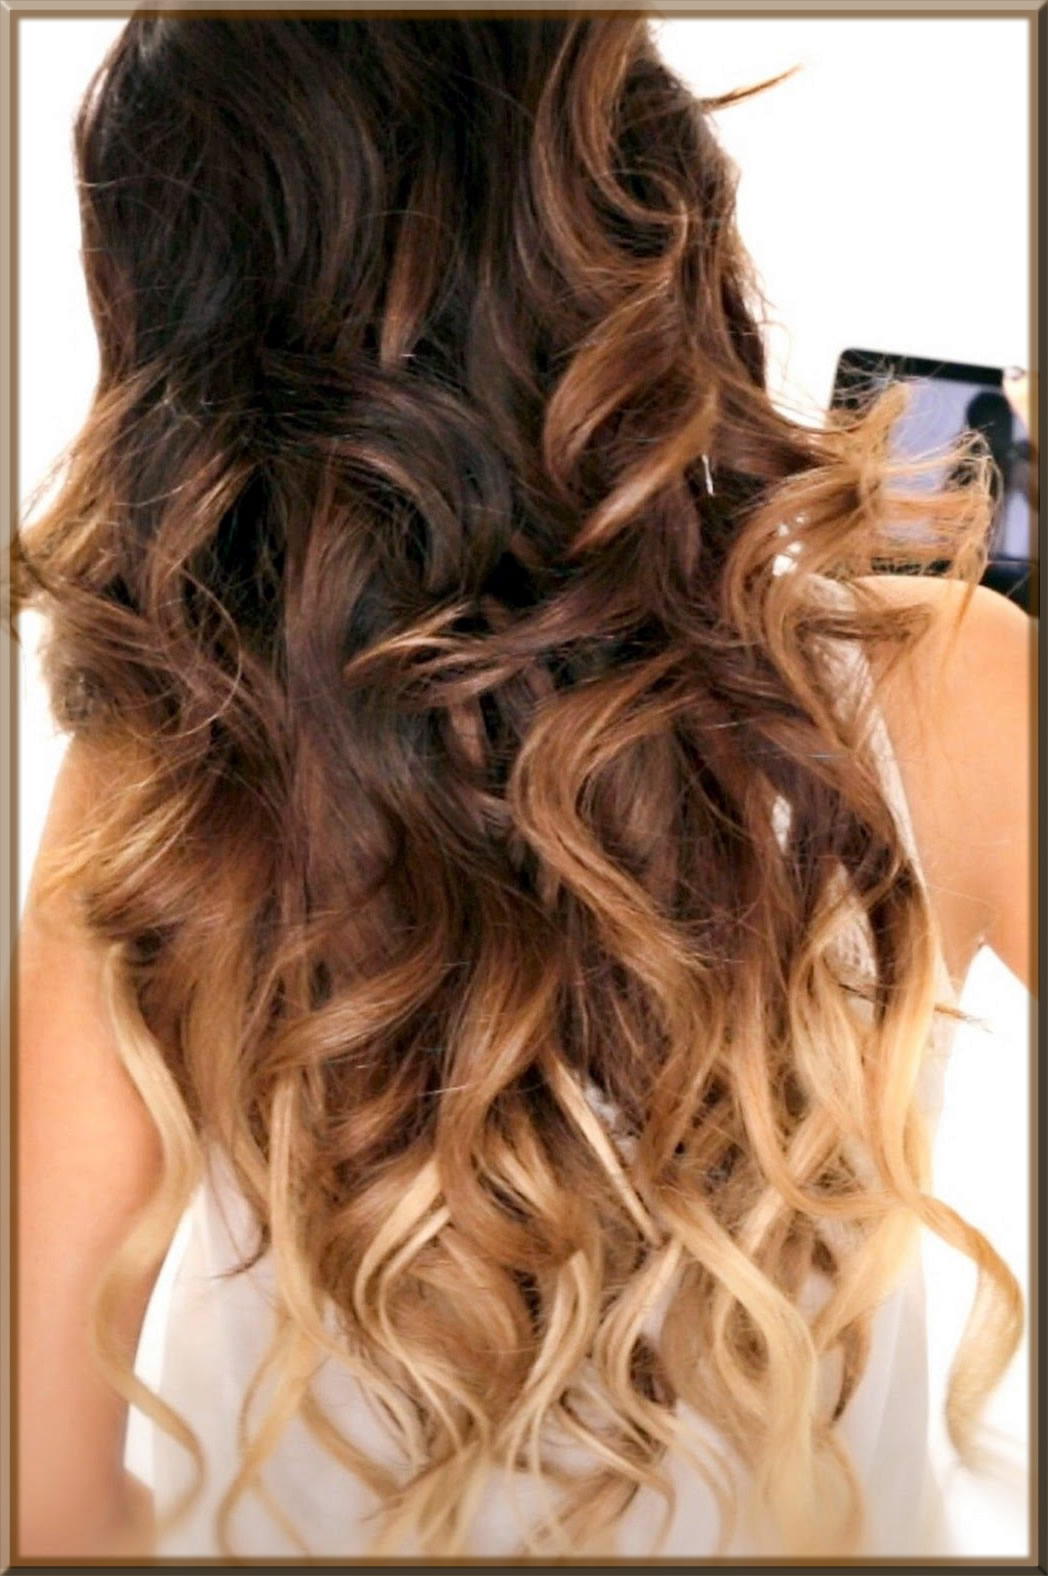 Lazy Curls hairstyles for girls